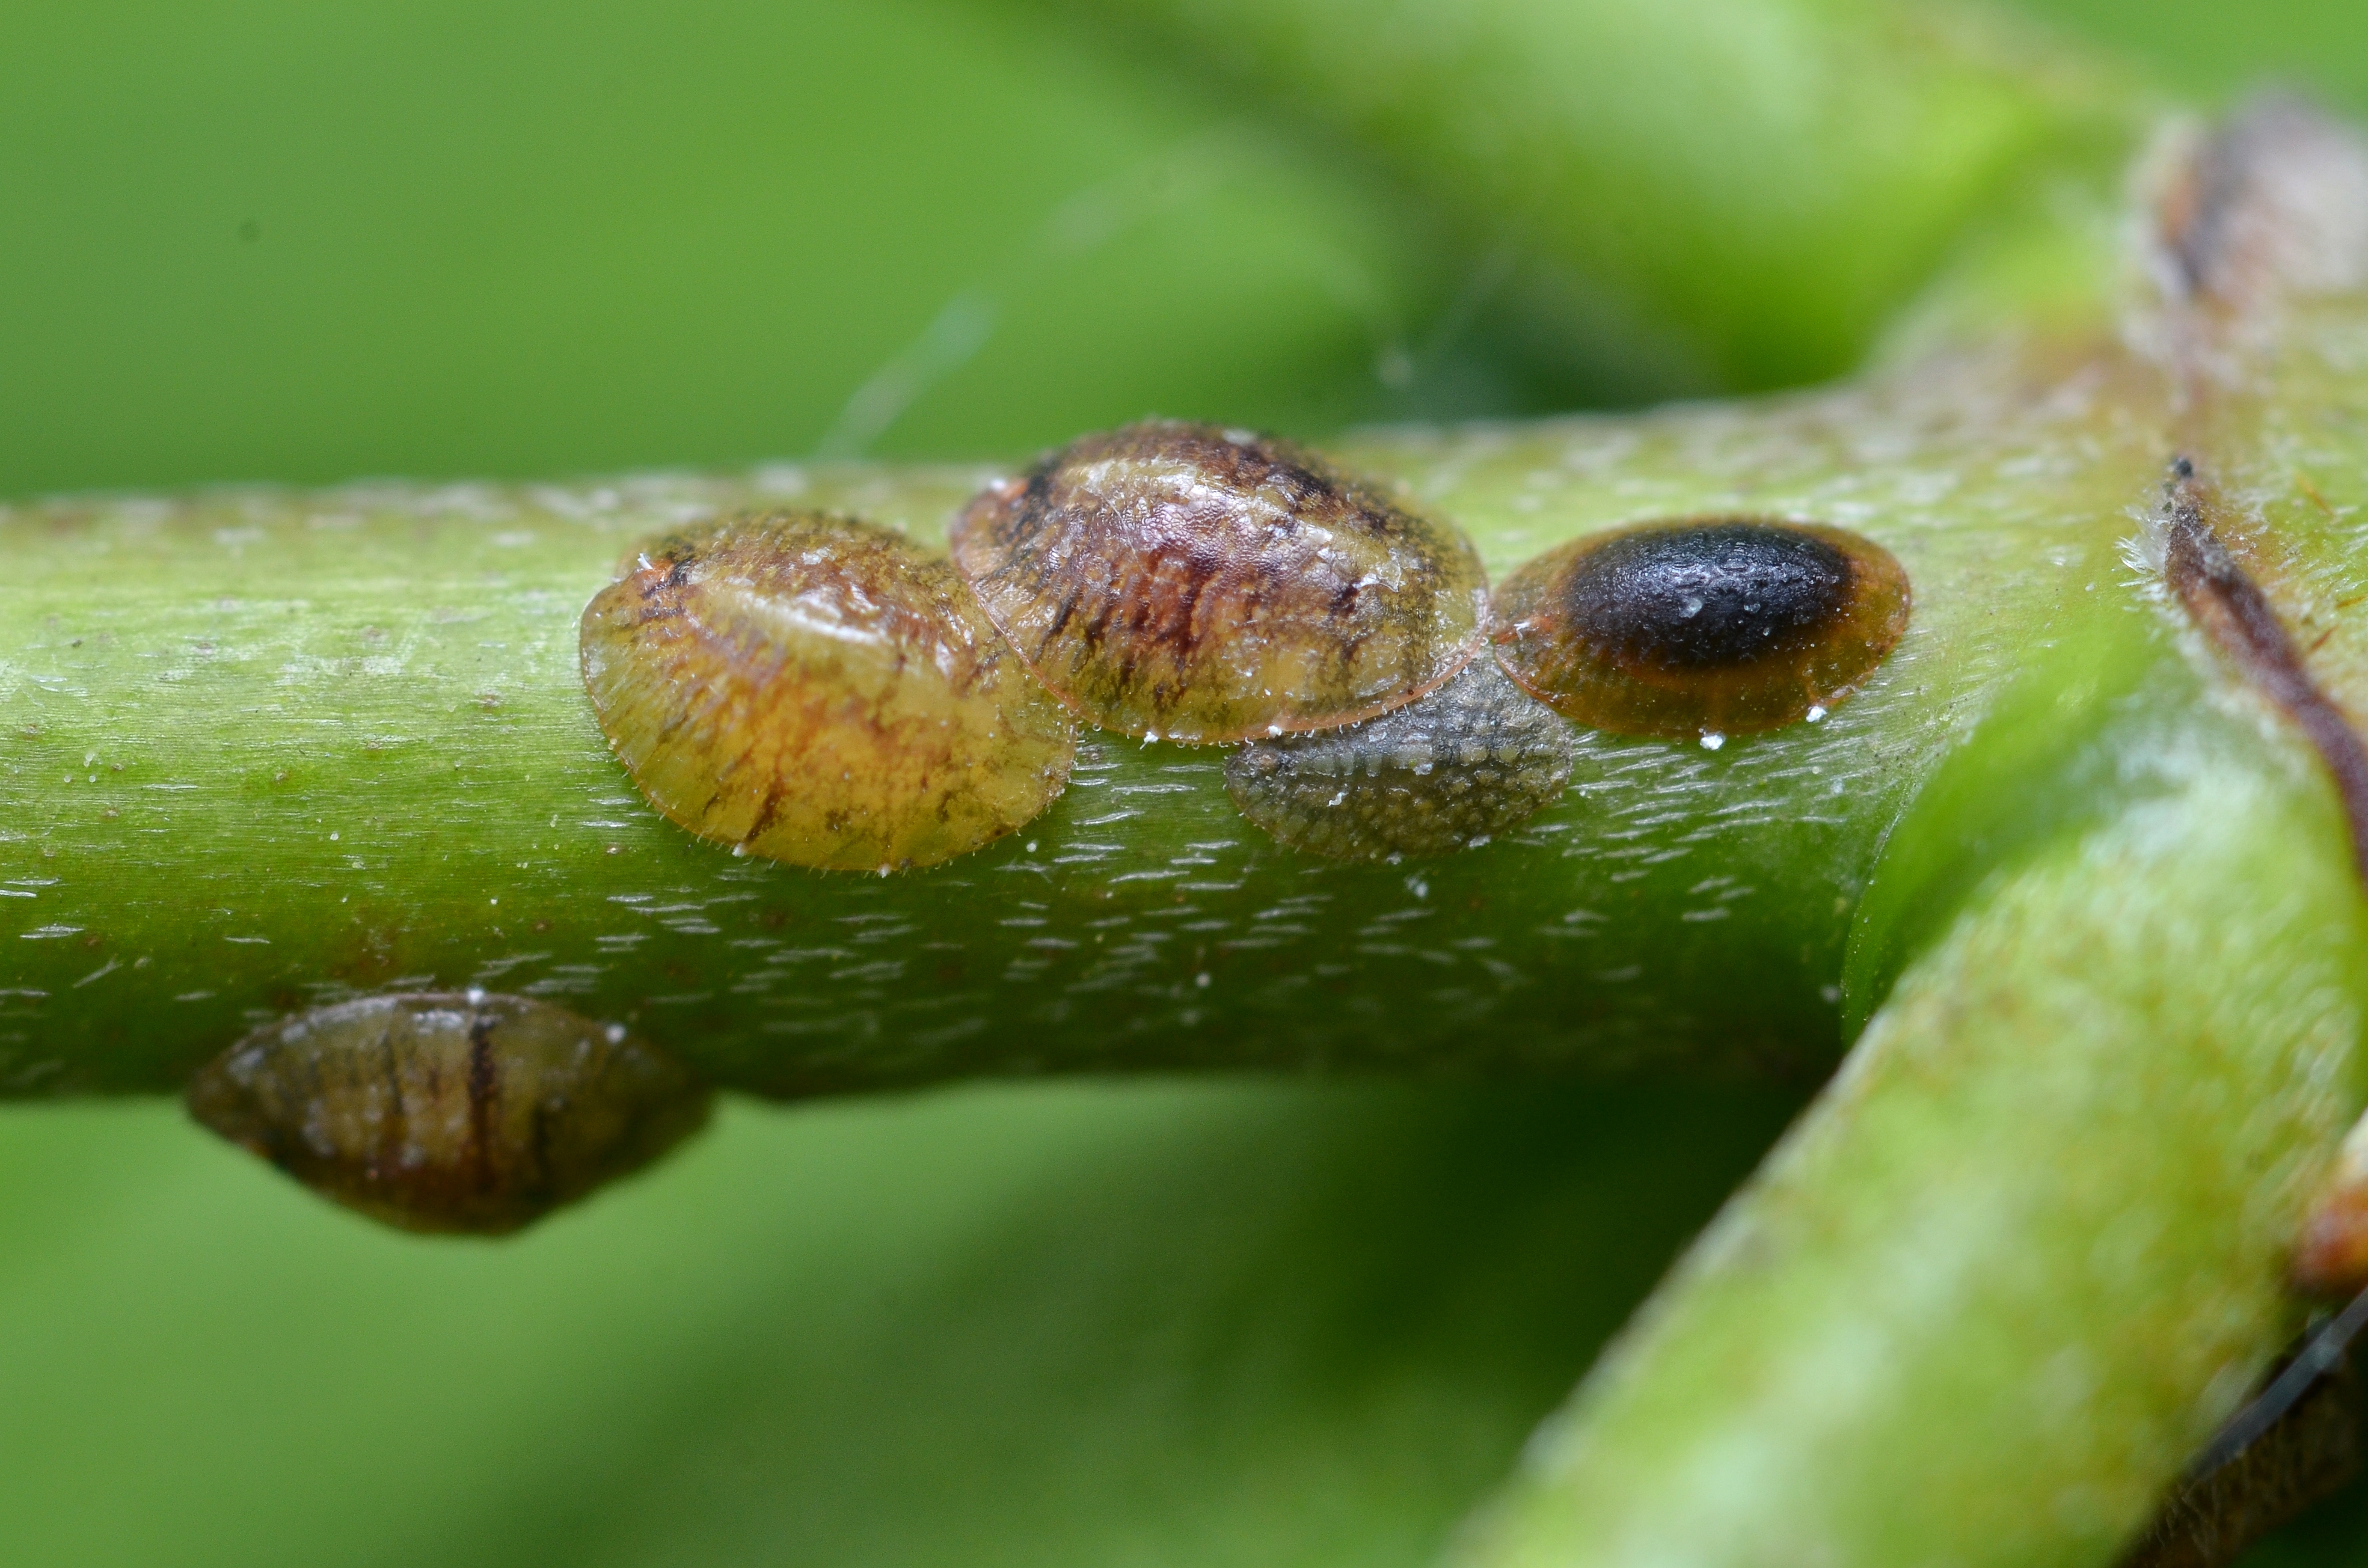 Description scale insects (7244837120)